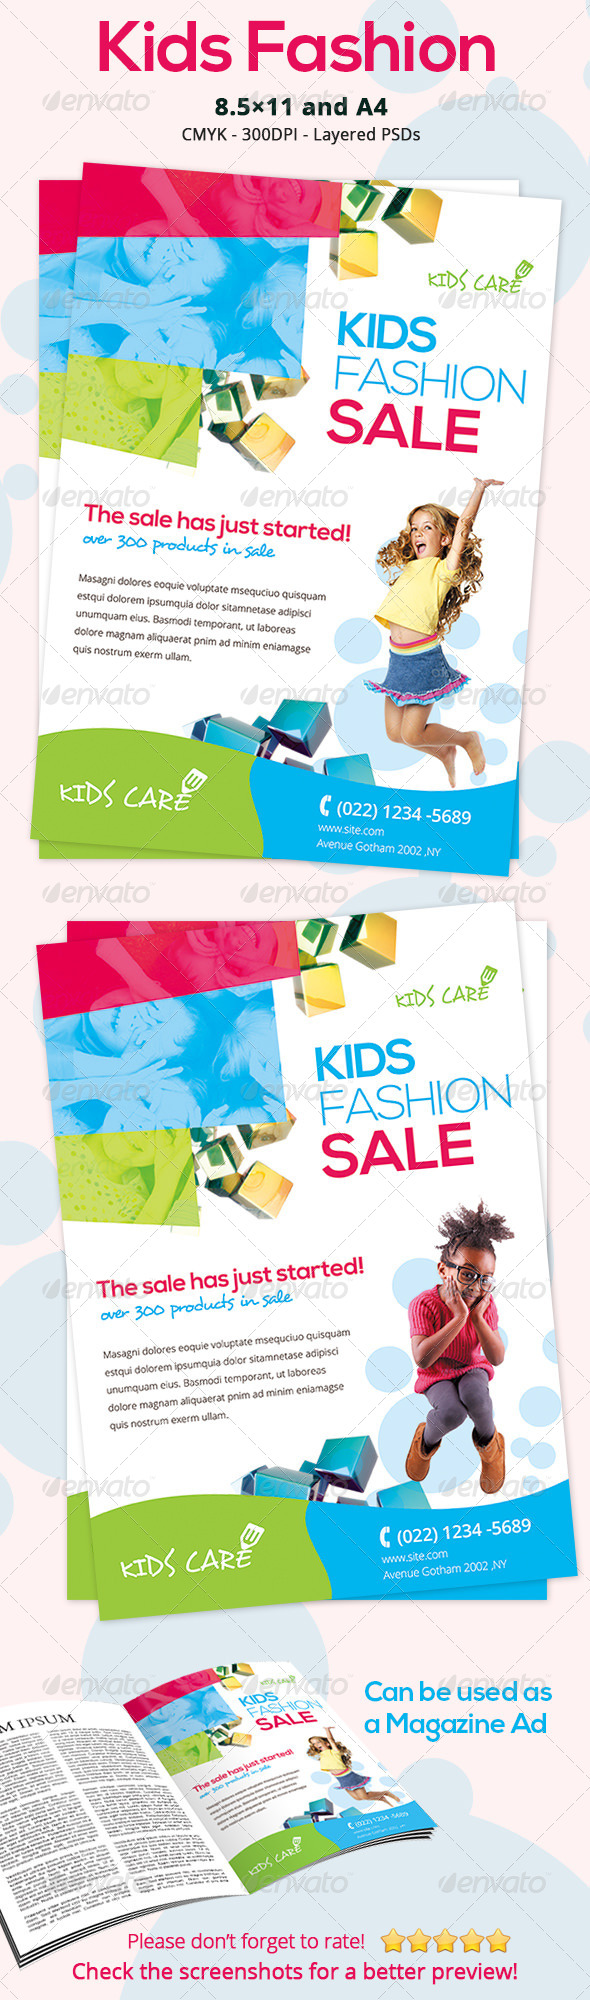 Colorful Kids Fashion Flyer by ingridk | GraphicRiver